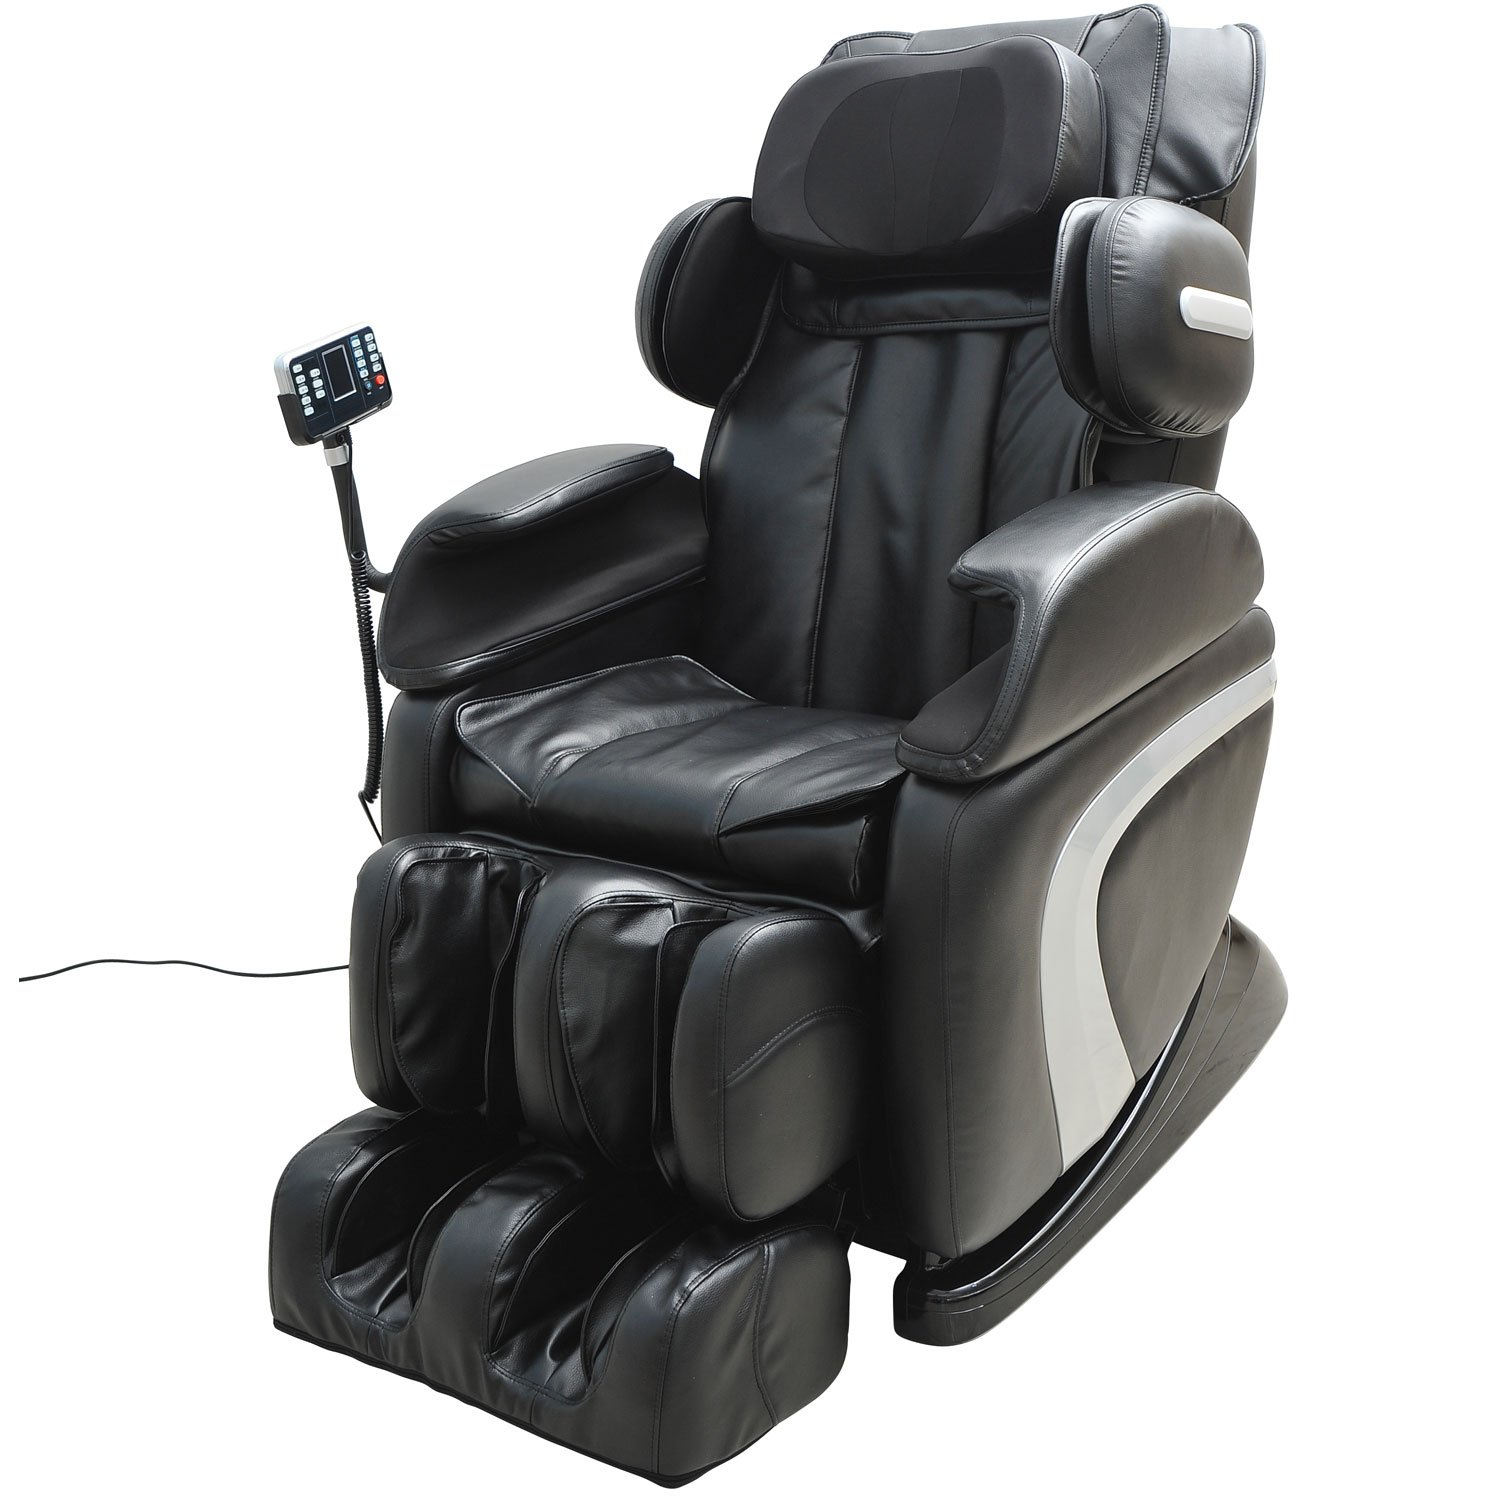 Hom Luxury Reclining Leather Massage Chair Automatic Zero